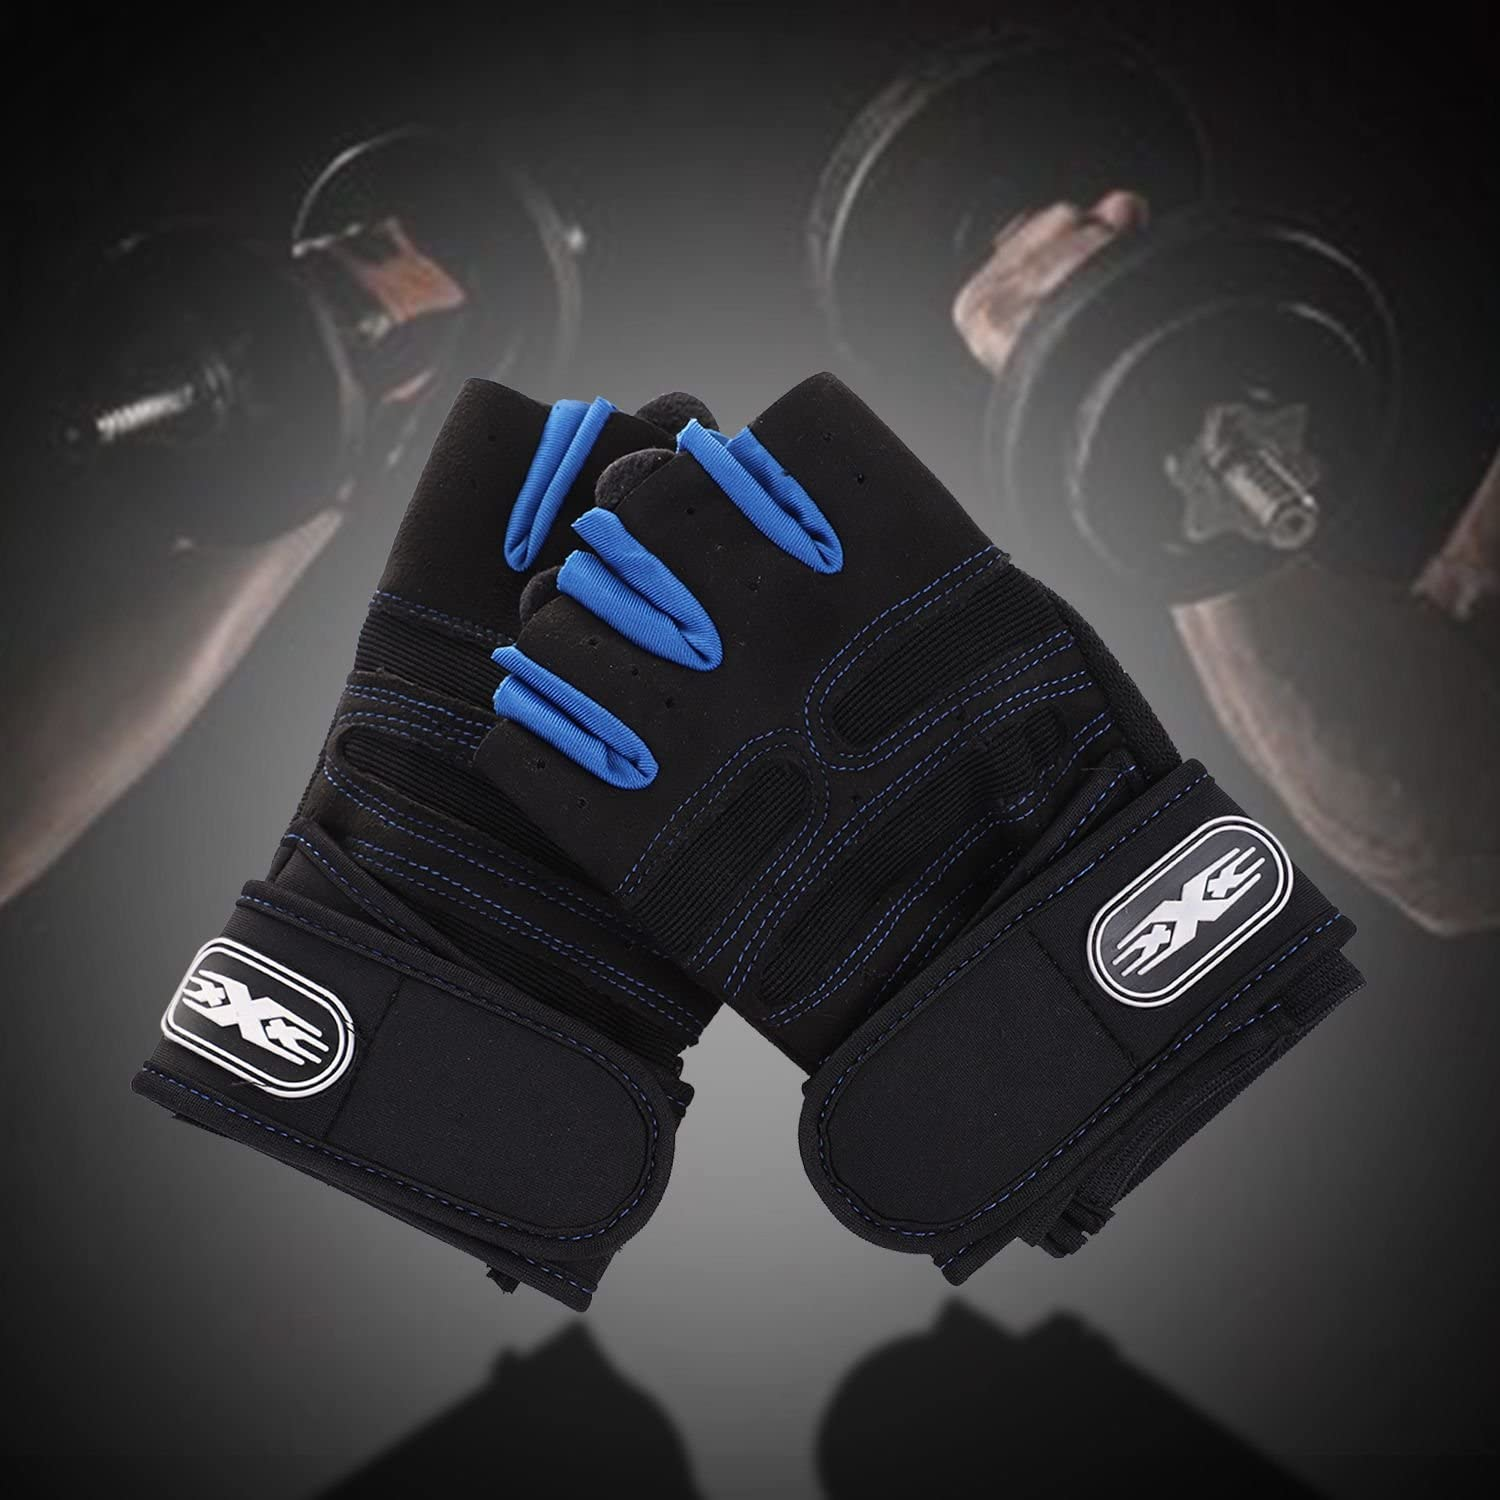 CUHAWUDBA Weight lifting Gym Gloves Training Fitness Wrist Wrap Workout Exercise Sports Navy blue M